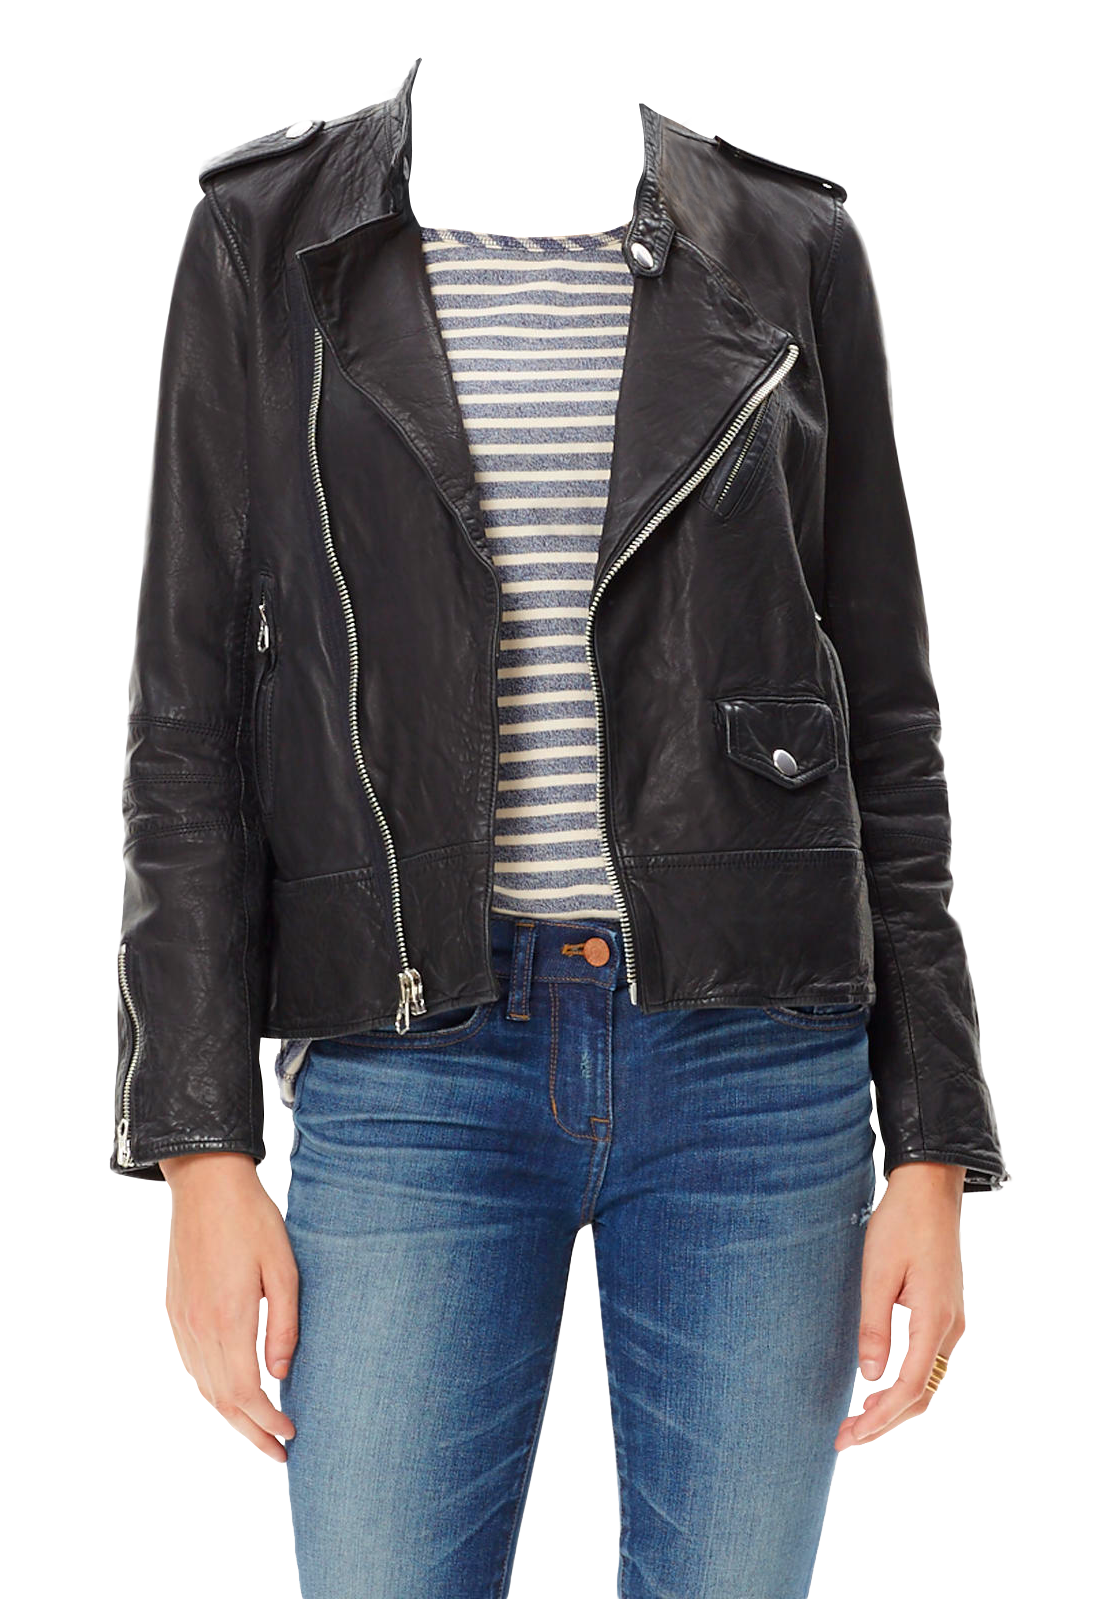 picture freeuse library Girl png image purepng. Preserver clipart lady jacket